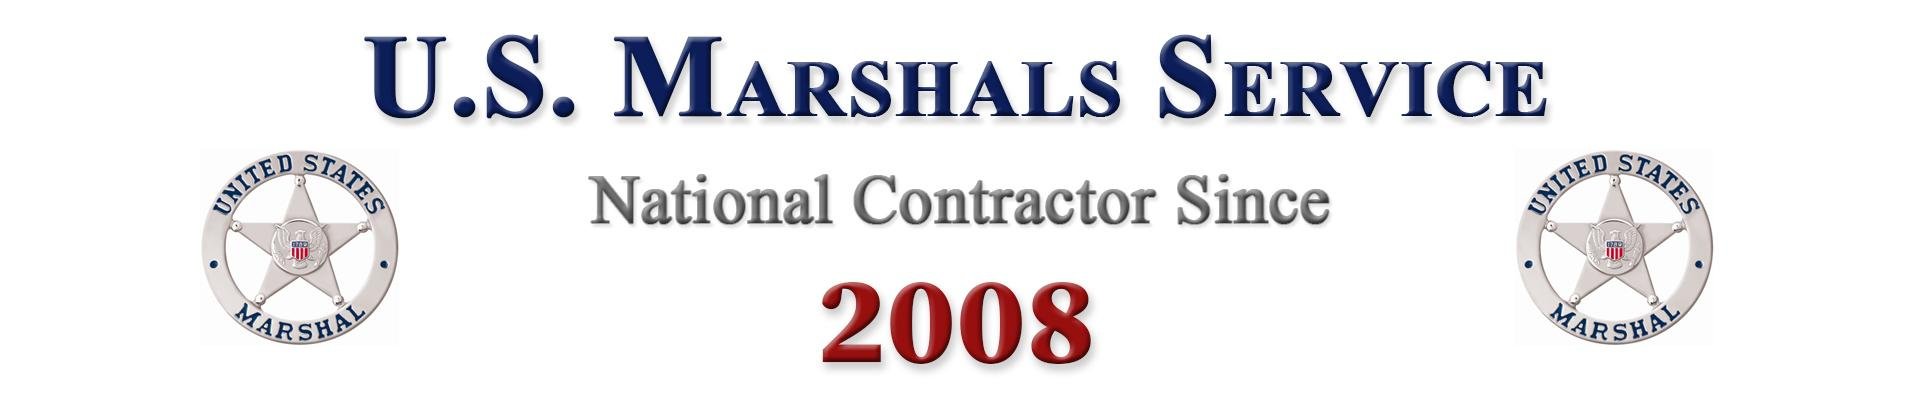 USM National Contractor.jpg